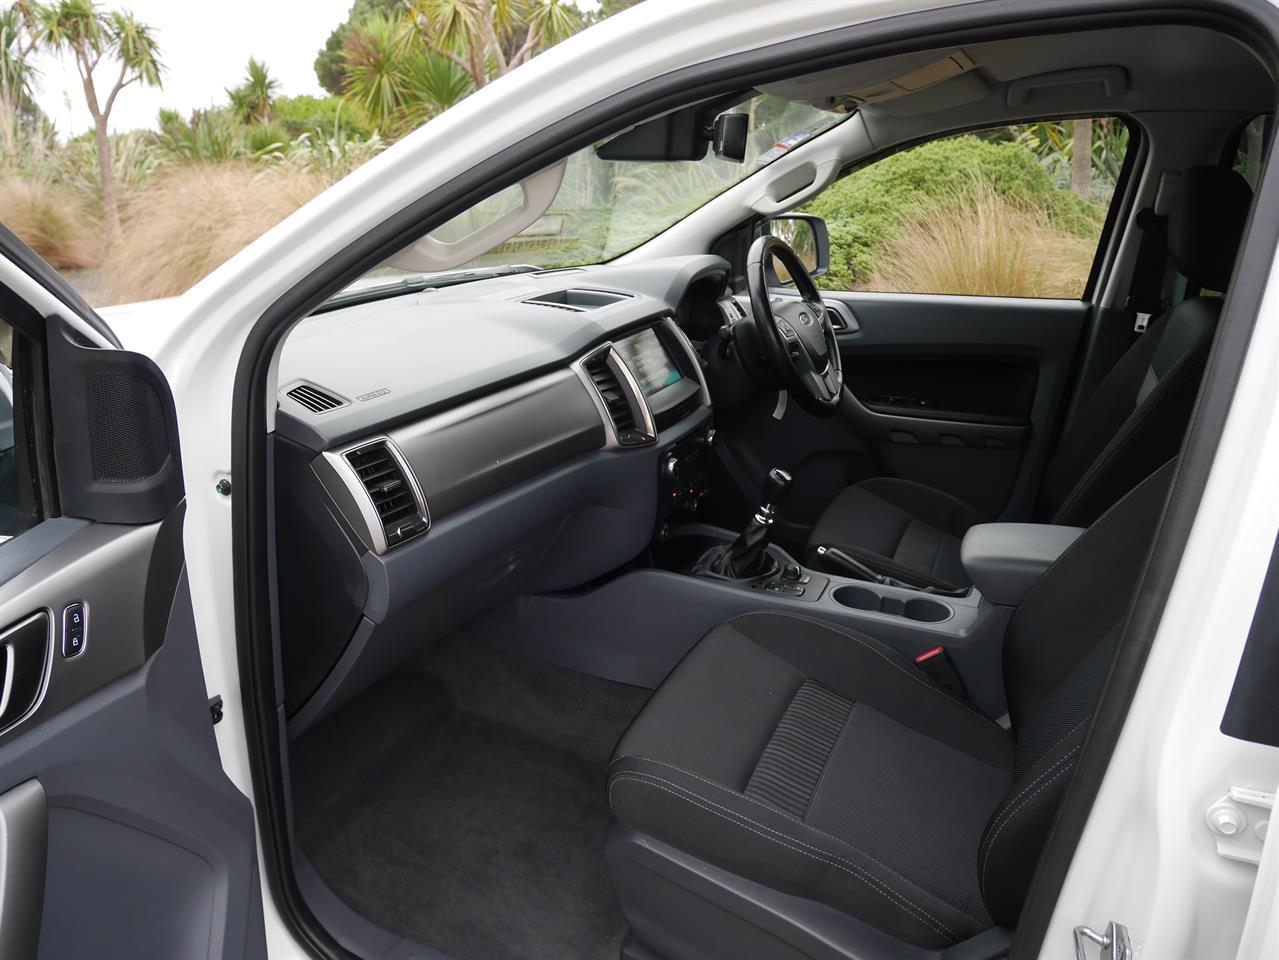 image-7, 2016 FORD RANGER XLT 3.2TD 4WD double cab at Invercargill